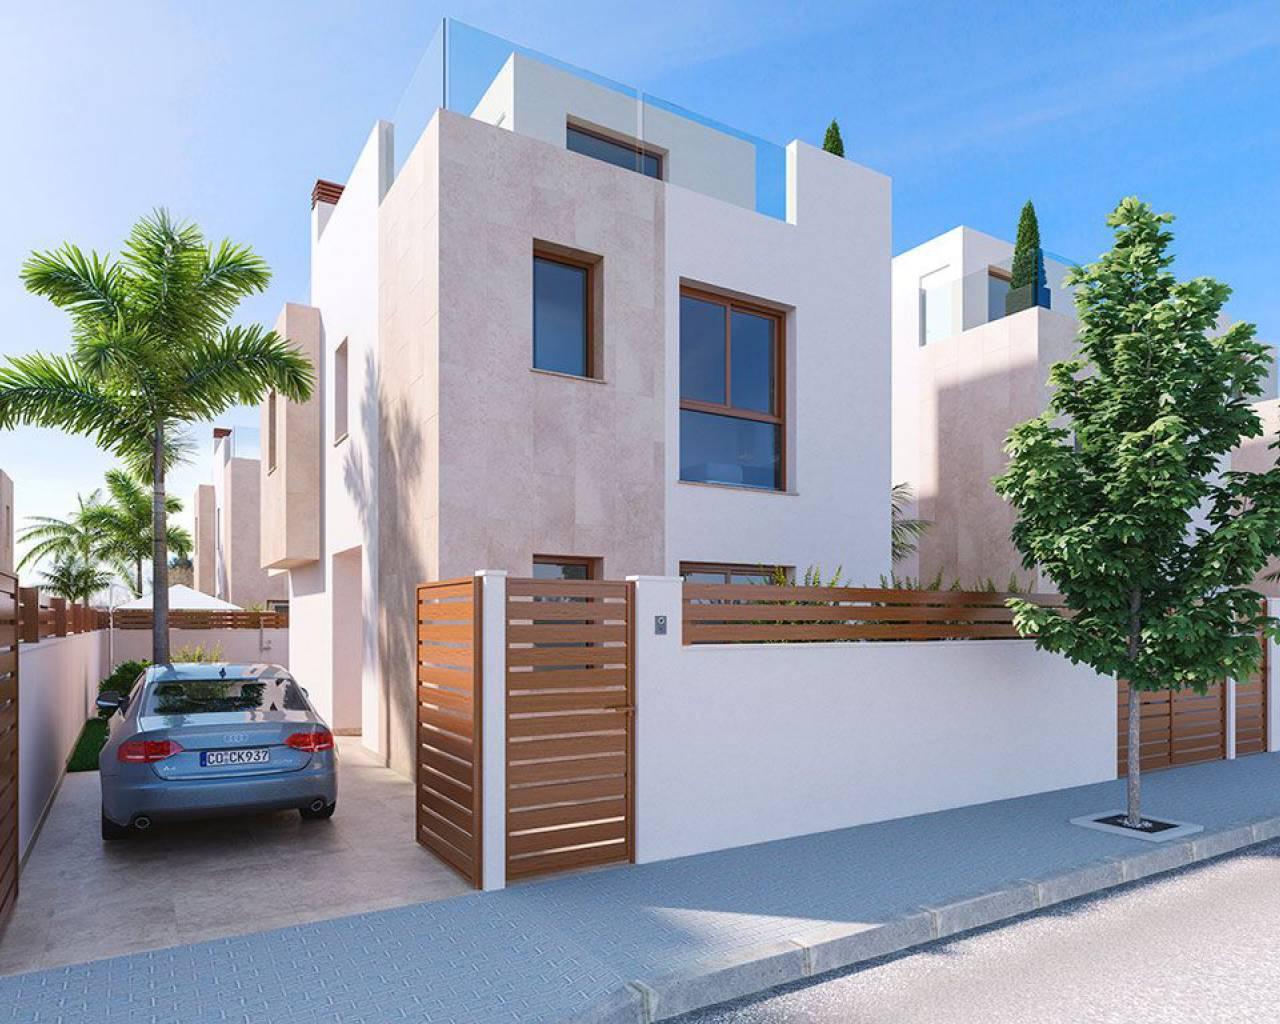 New Build - Villa - Pilar de la Horadada - CERCA DE LA PLAYA